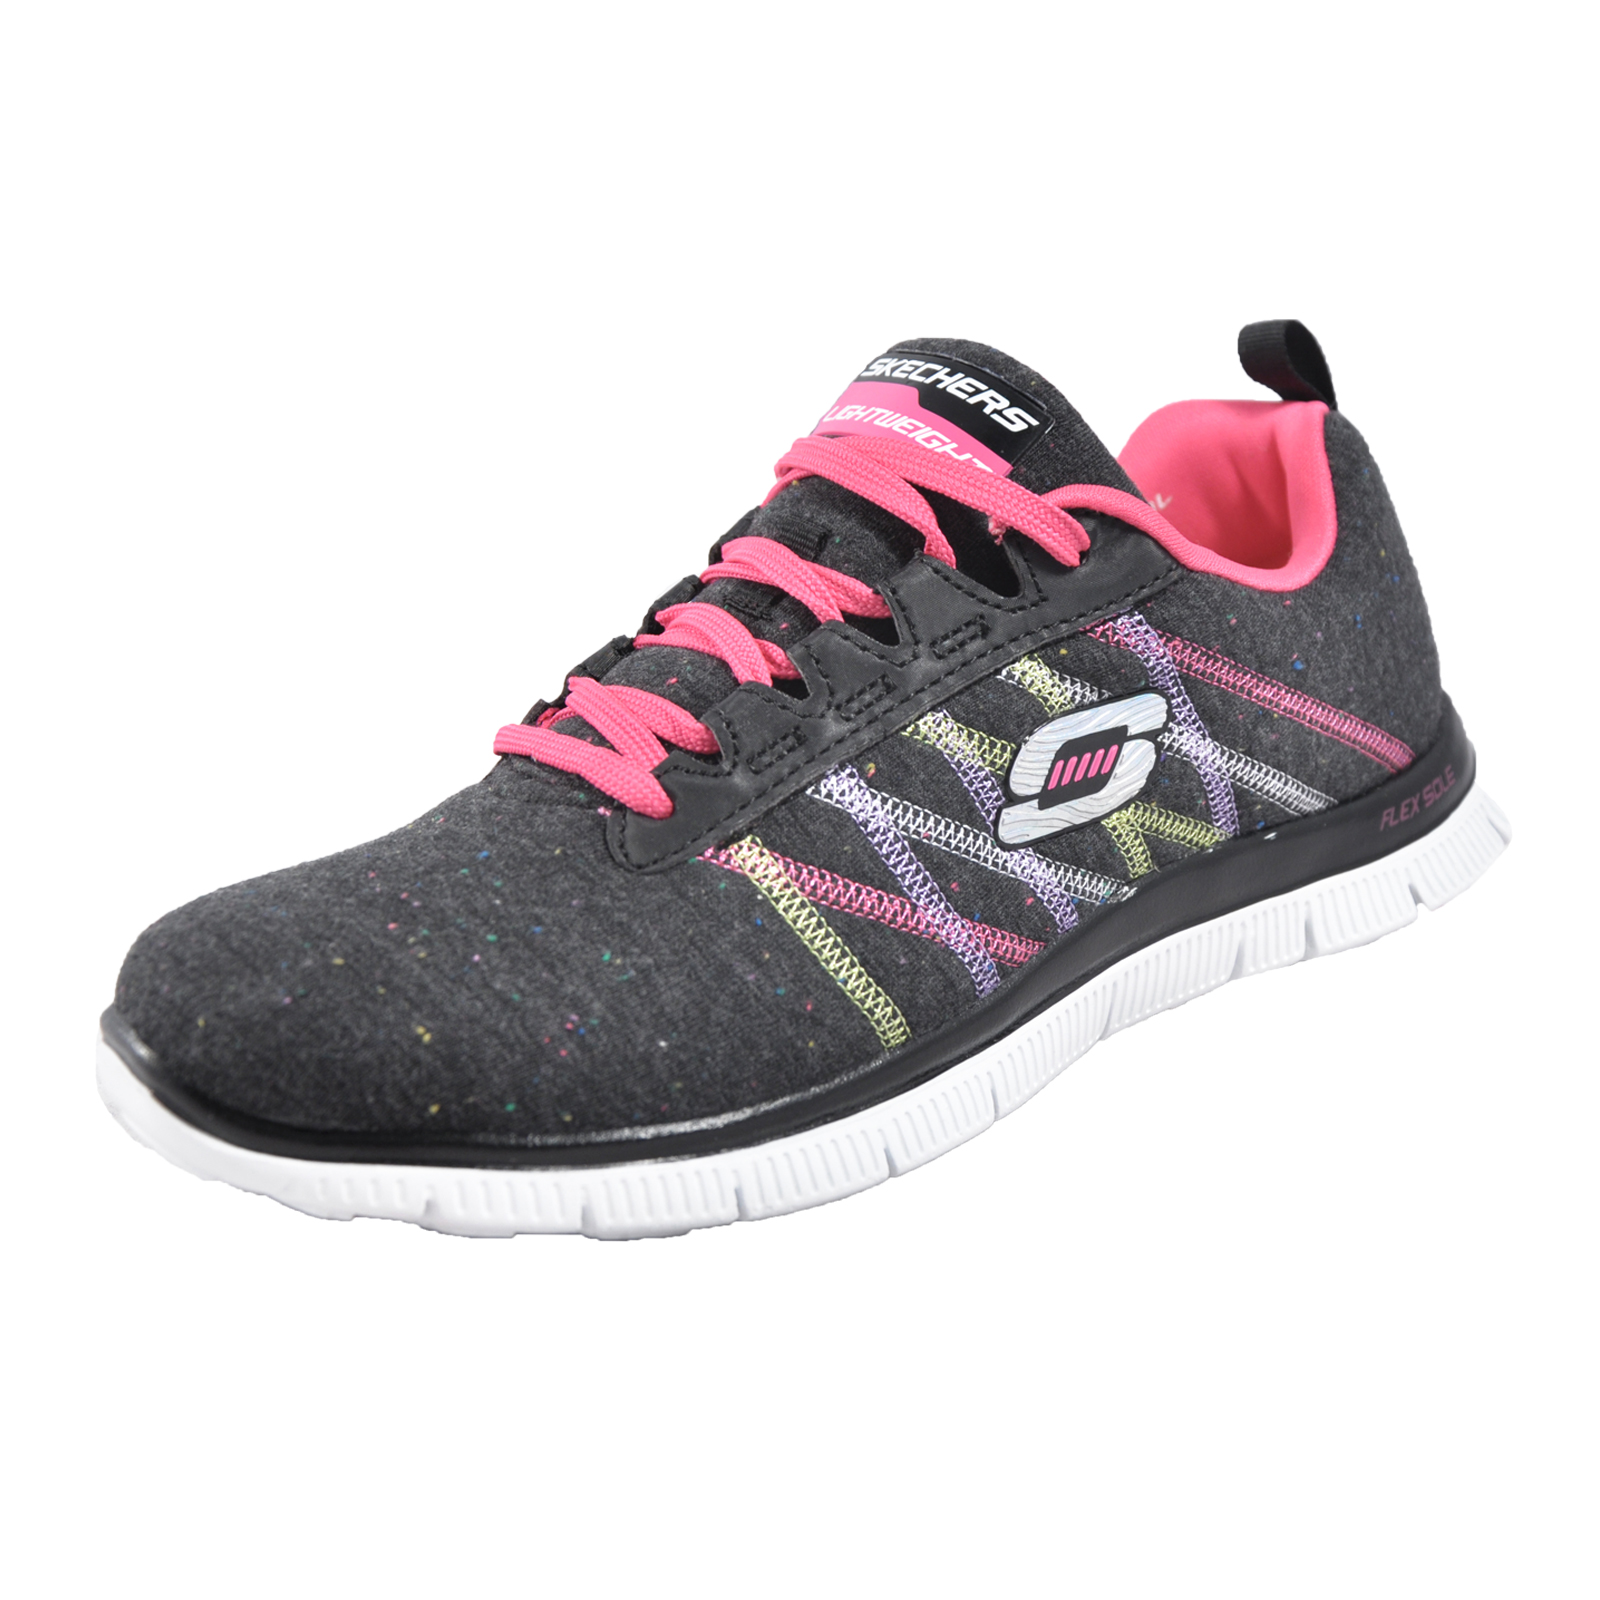 Skechers Flex Appeal Memory Foam Miracle Work Womens ...